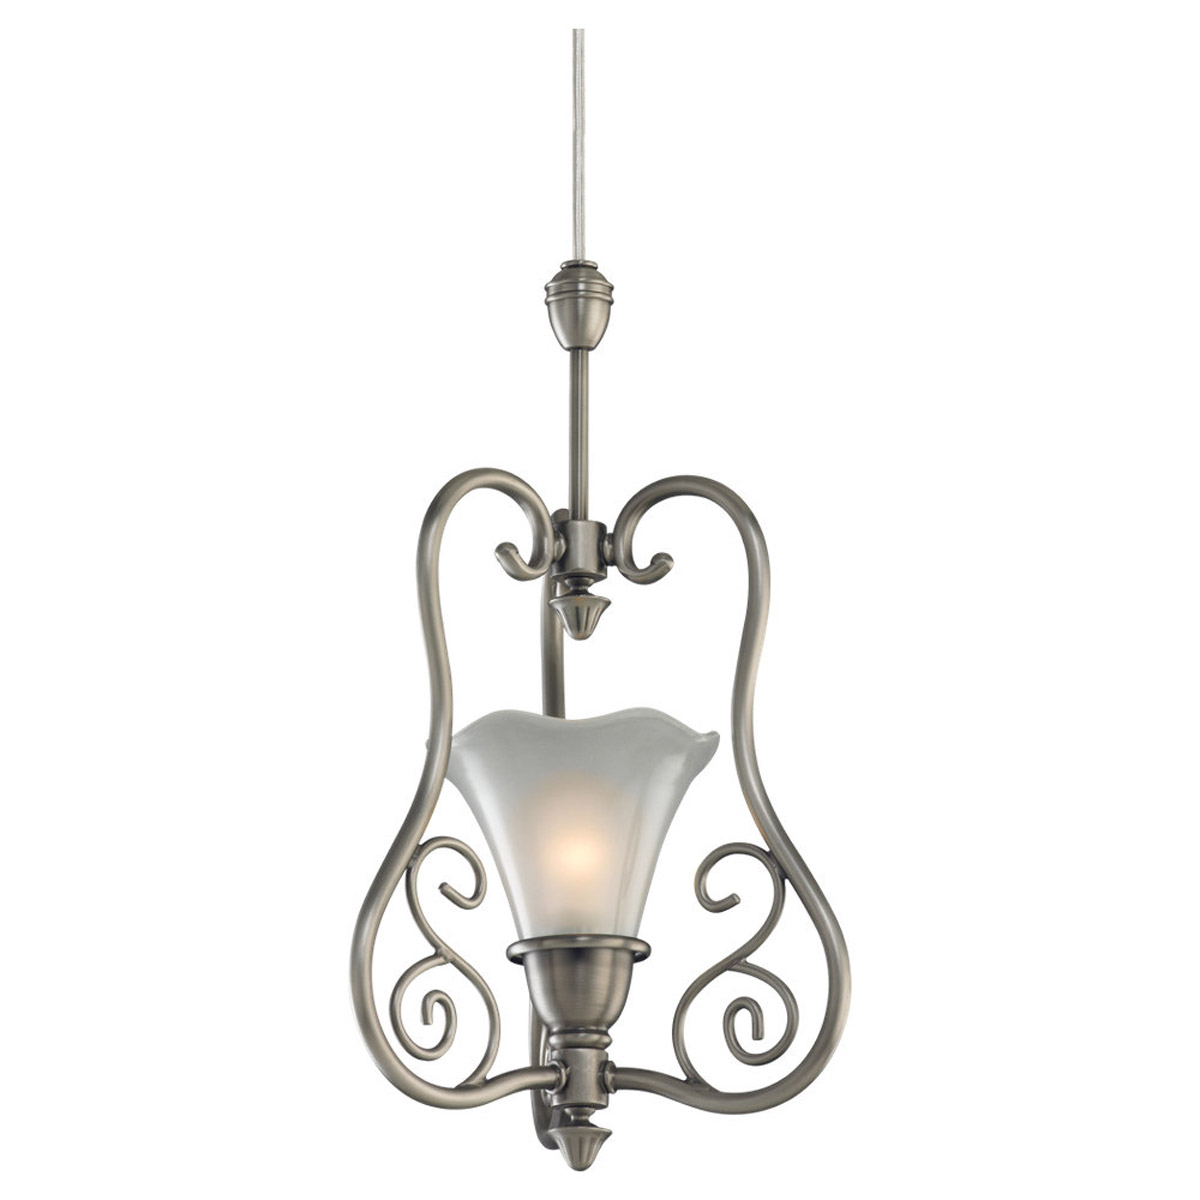 Sea Gull Lighting Trudy 1 + 1 Light Complete Pendant Assembly in Antique Brushed Nickel 94565-965